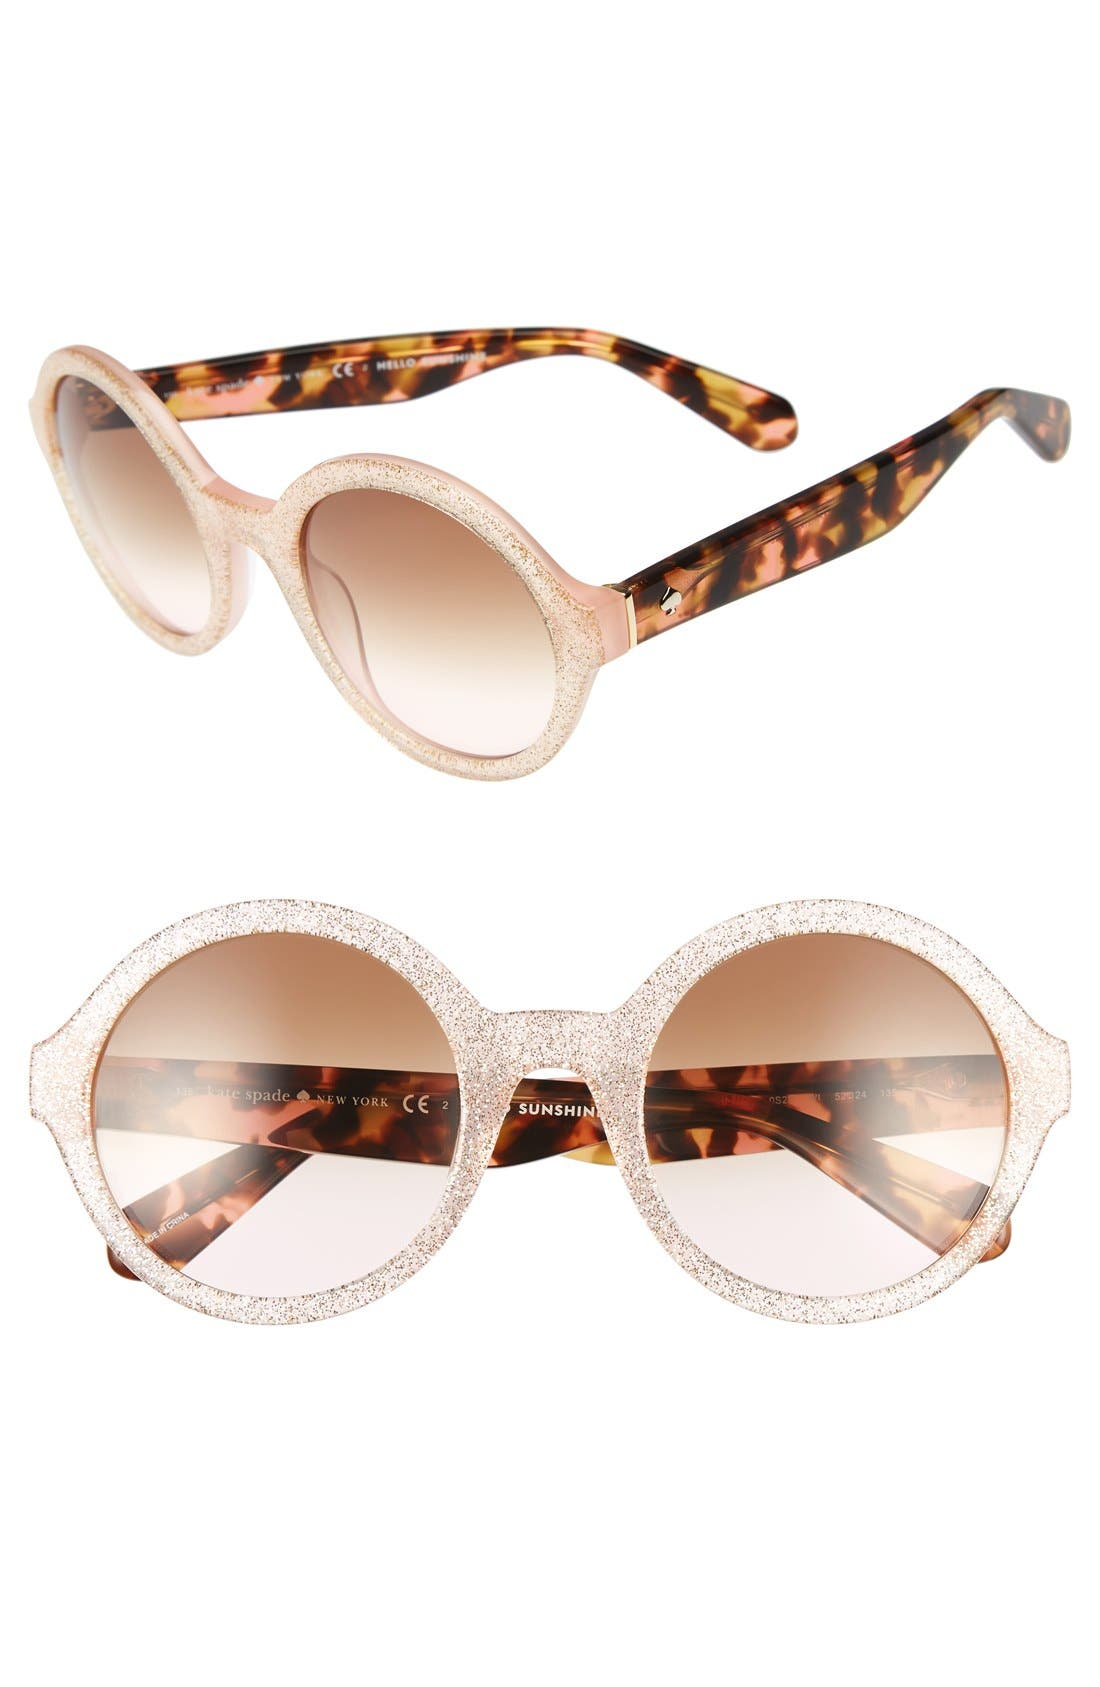 KATE SPADE NEW YORK khriss 52mm round sunglasses